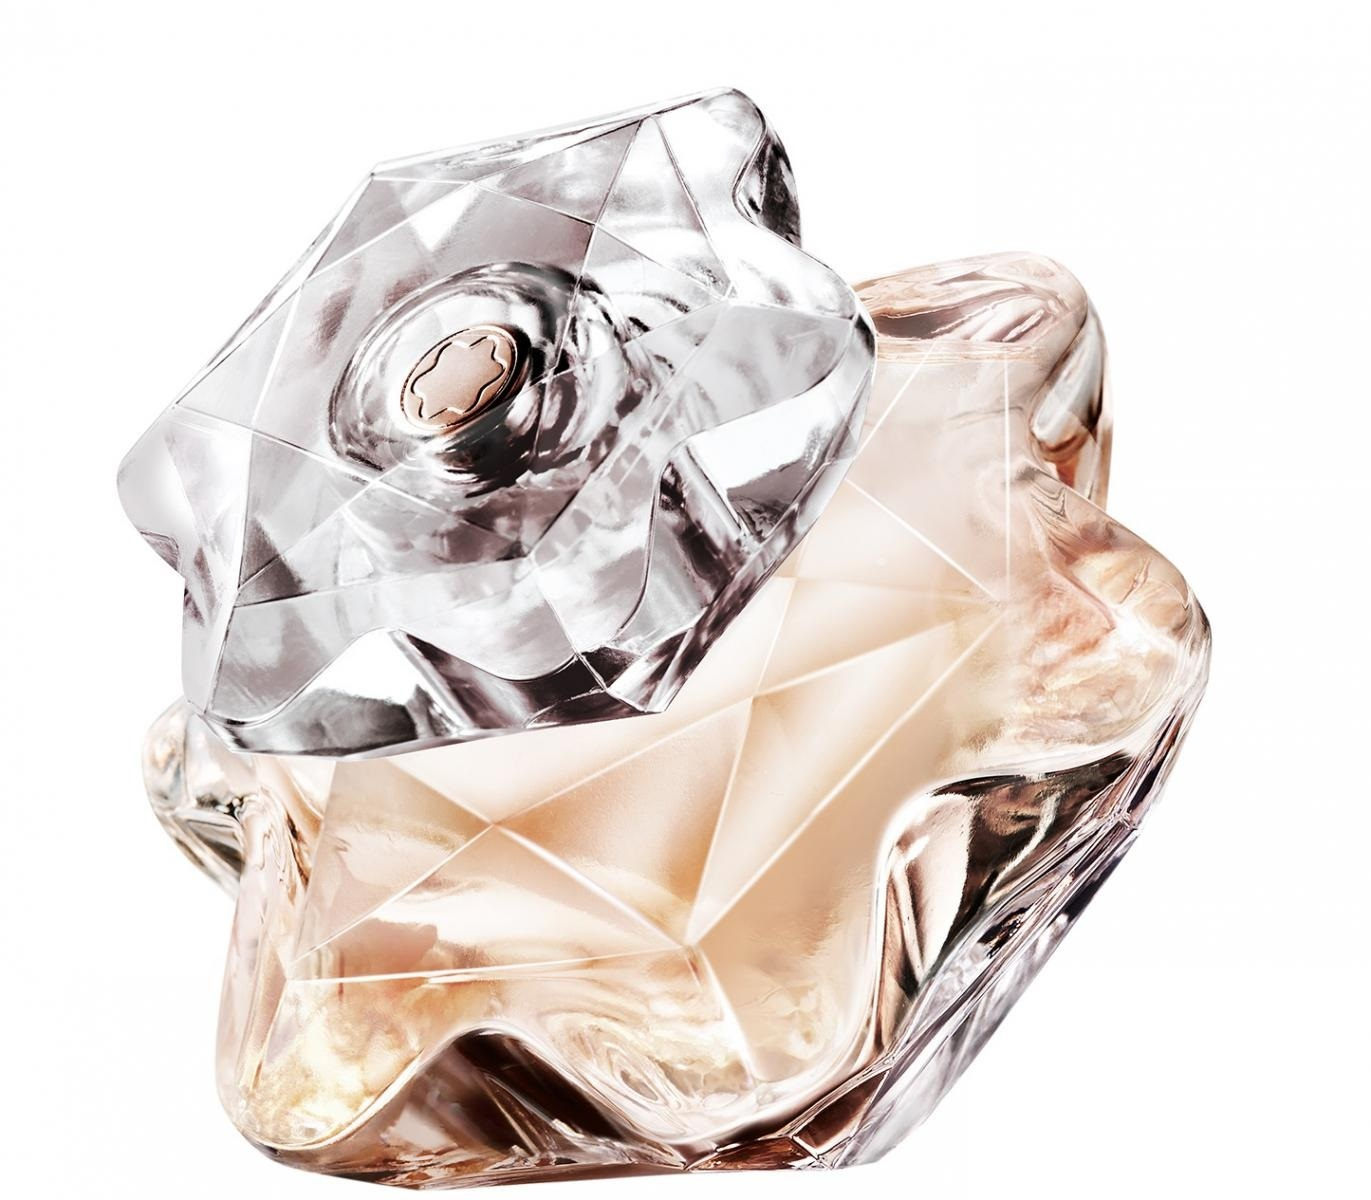 Mont Blanc - Lady Emblem Fragrance (75ml EDP) image